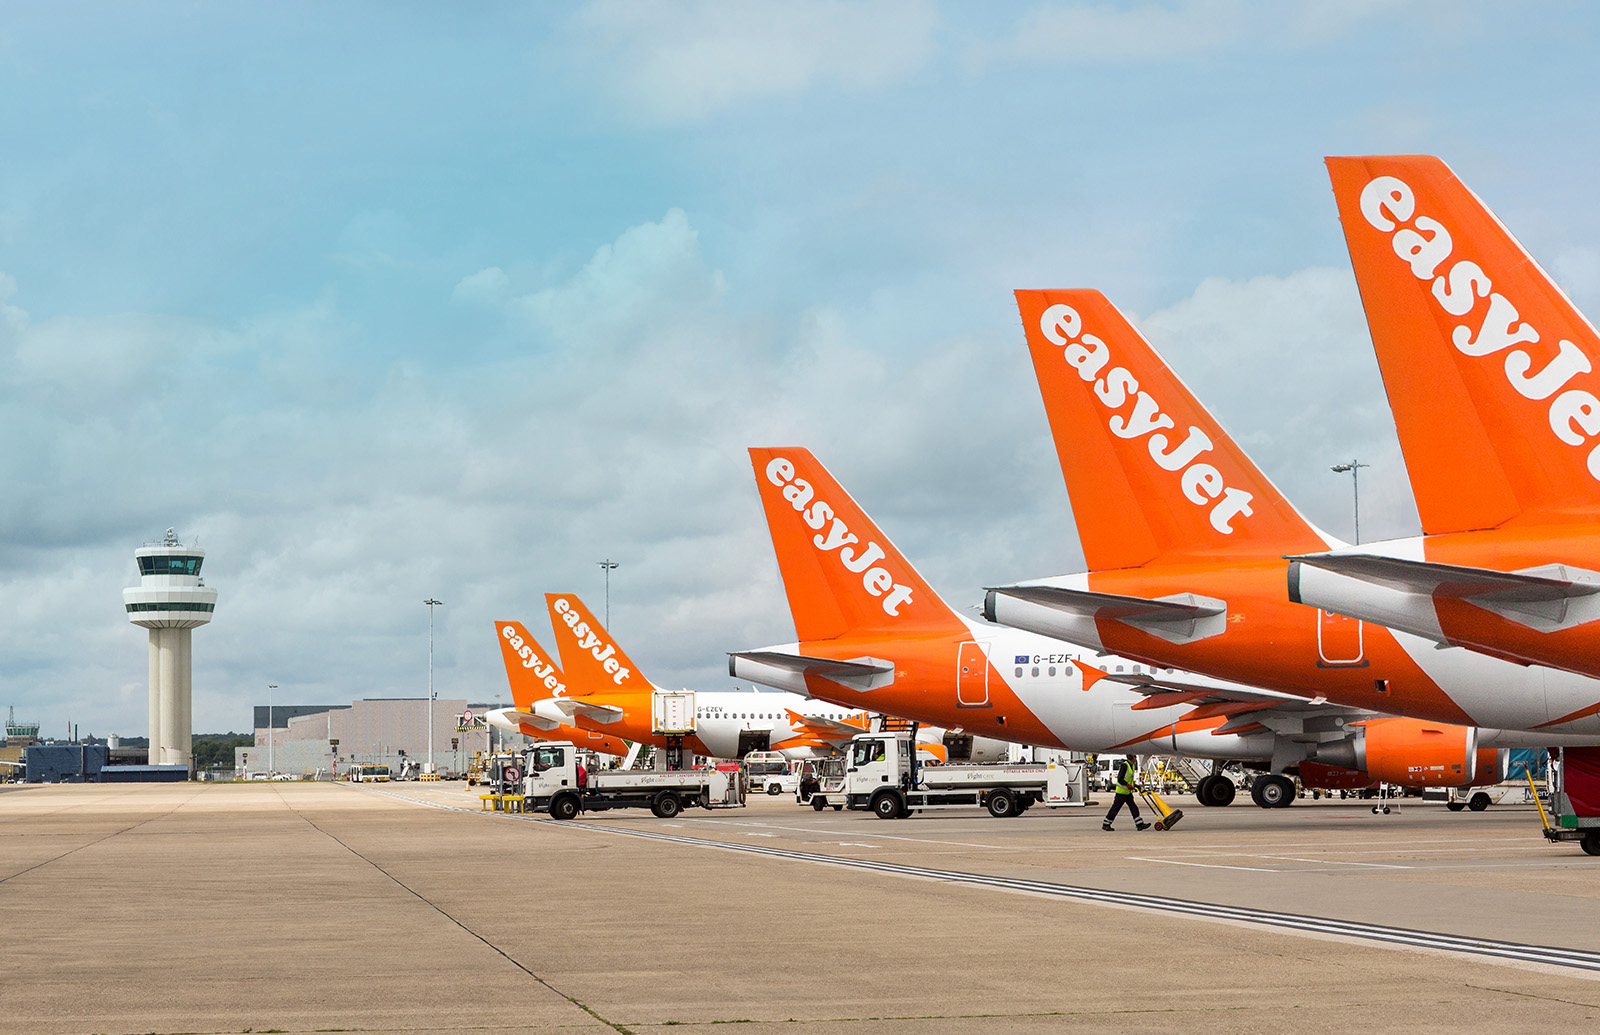 EasyJet to cut up to 3,000 jobs